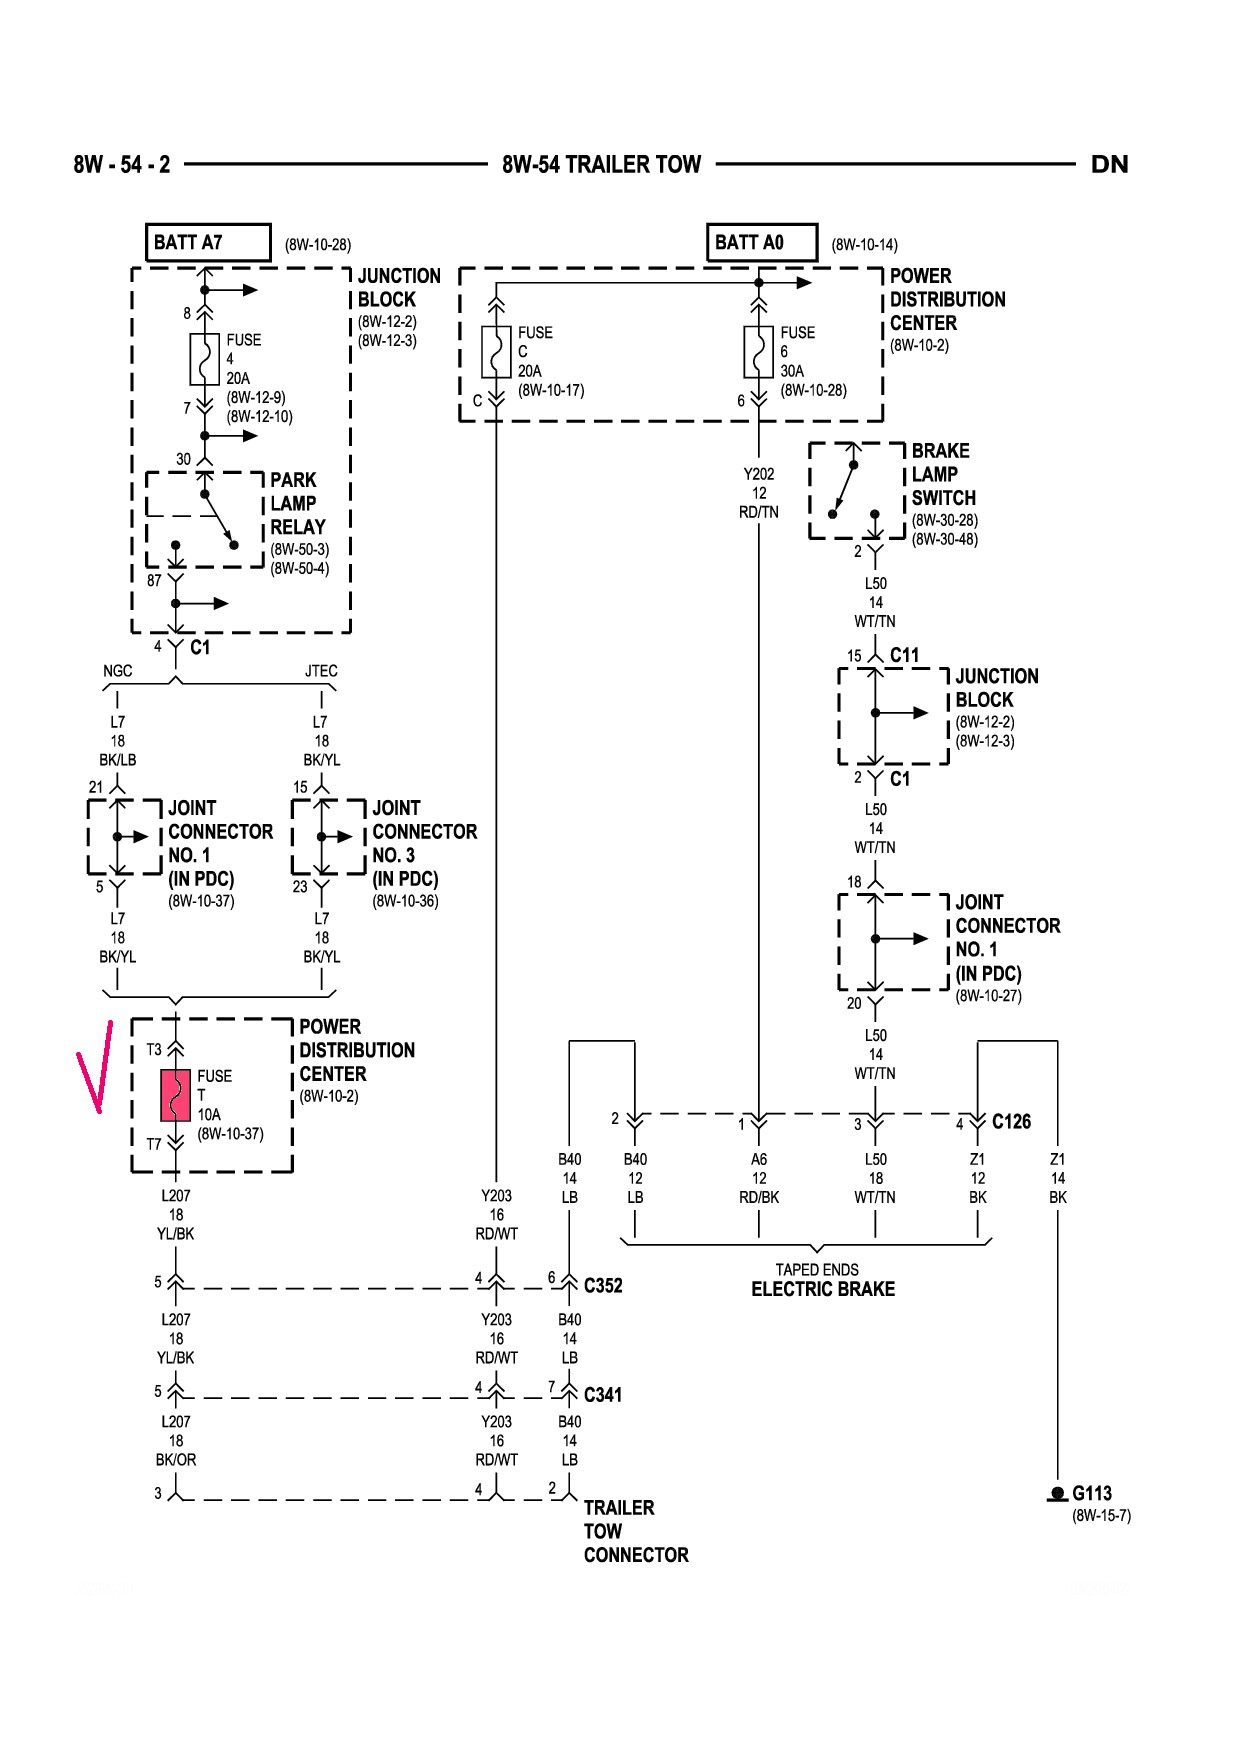 1998 Dodge Durango Engine Diagram Best Dodge Durango Wiring Diagram Ideas Everything You Need to Of 1998 Dodge Durango Engine Diagram